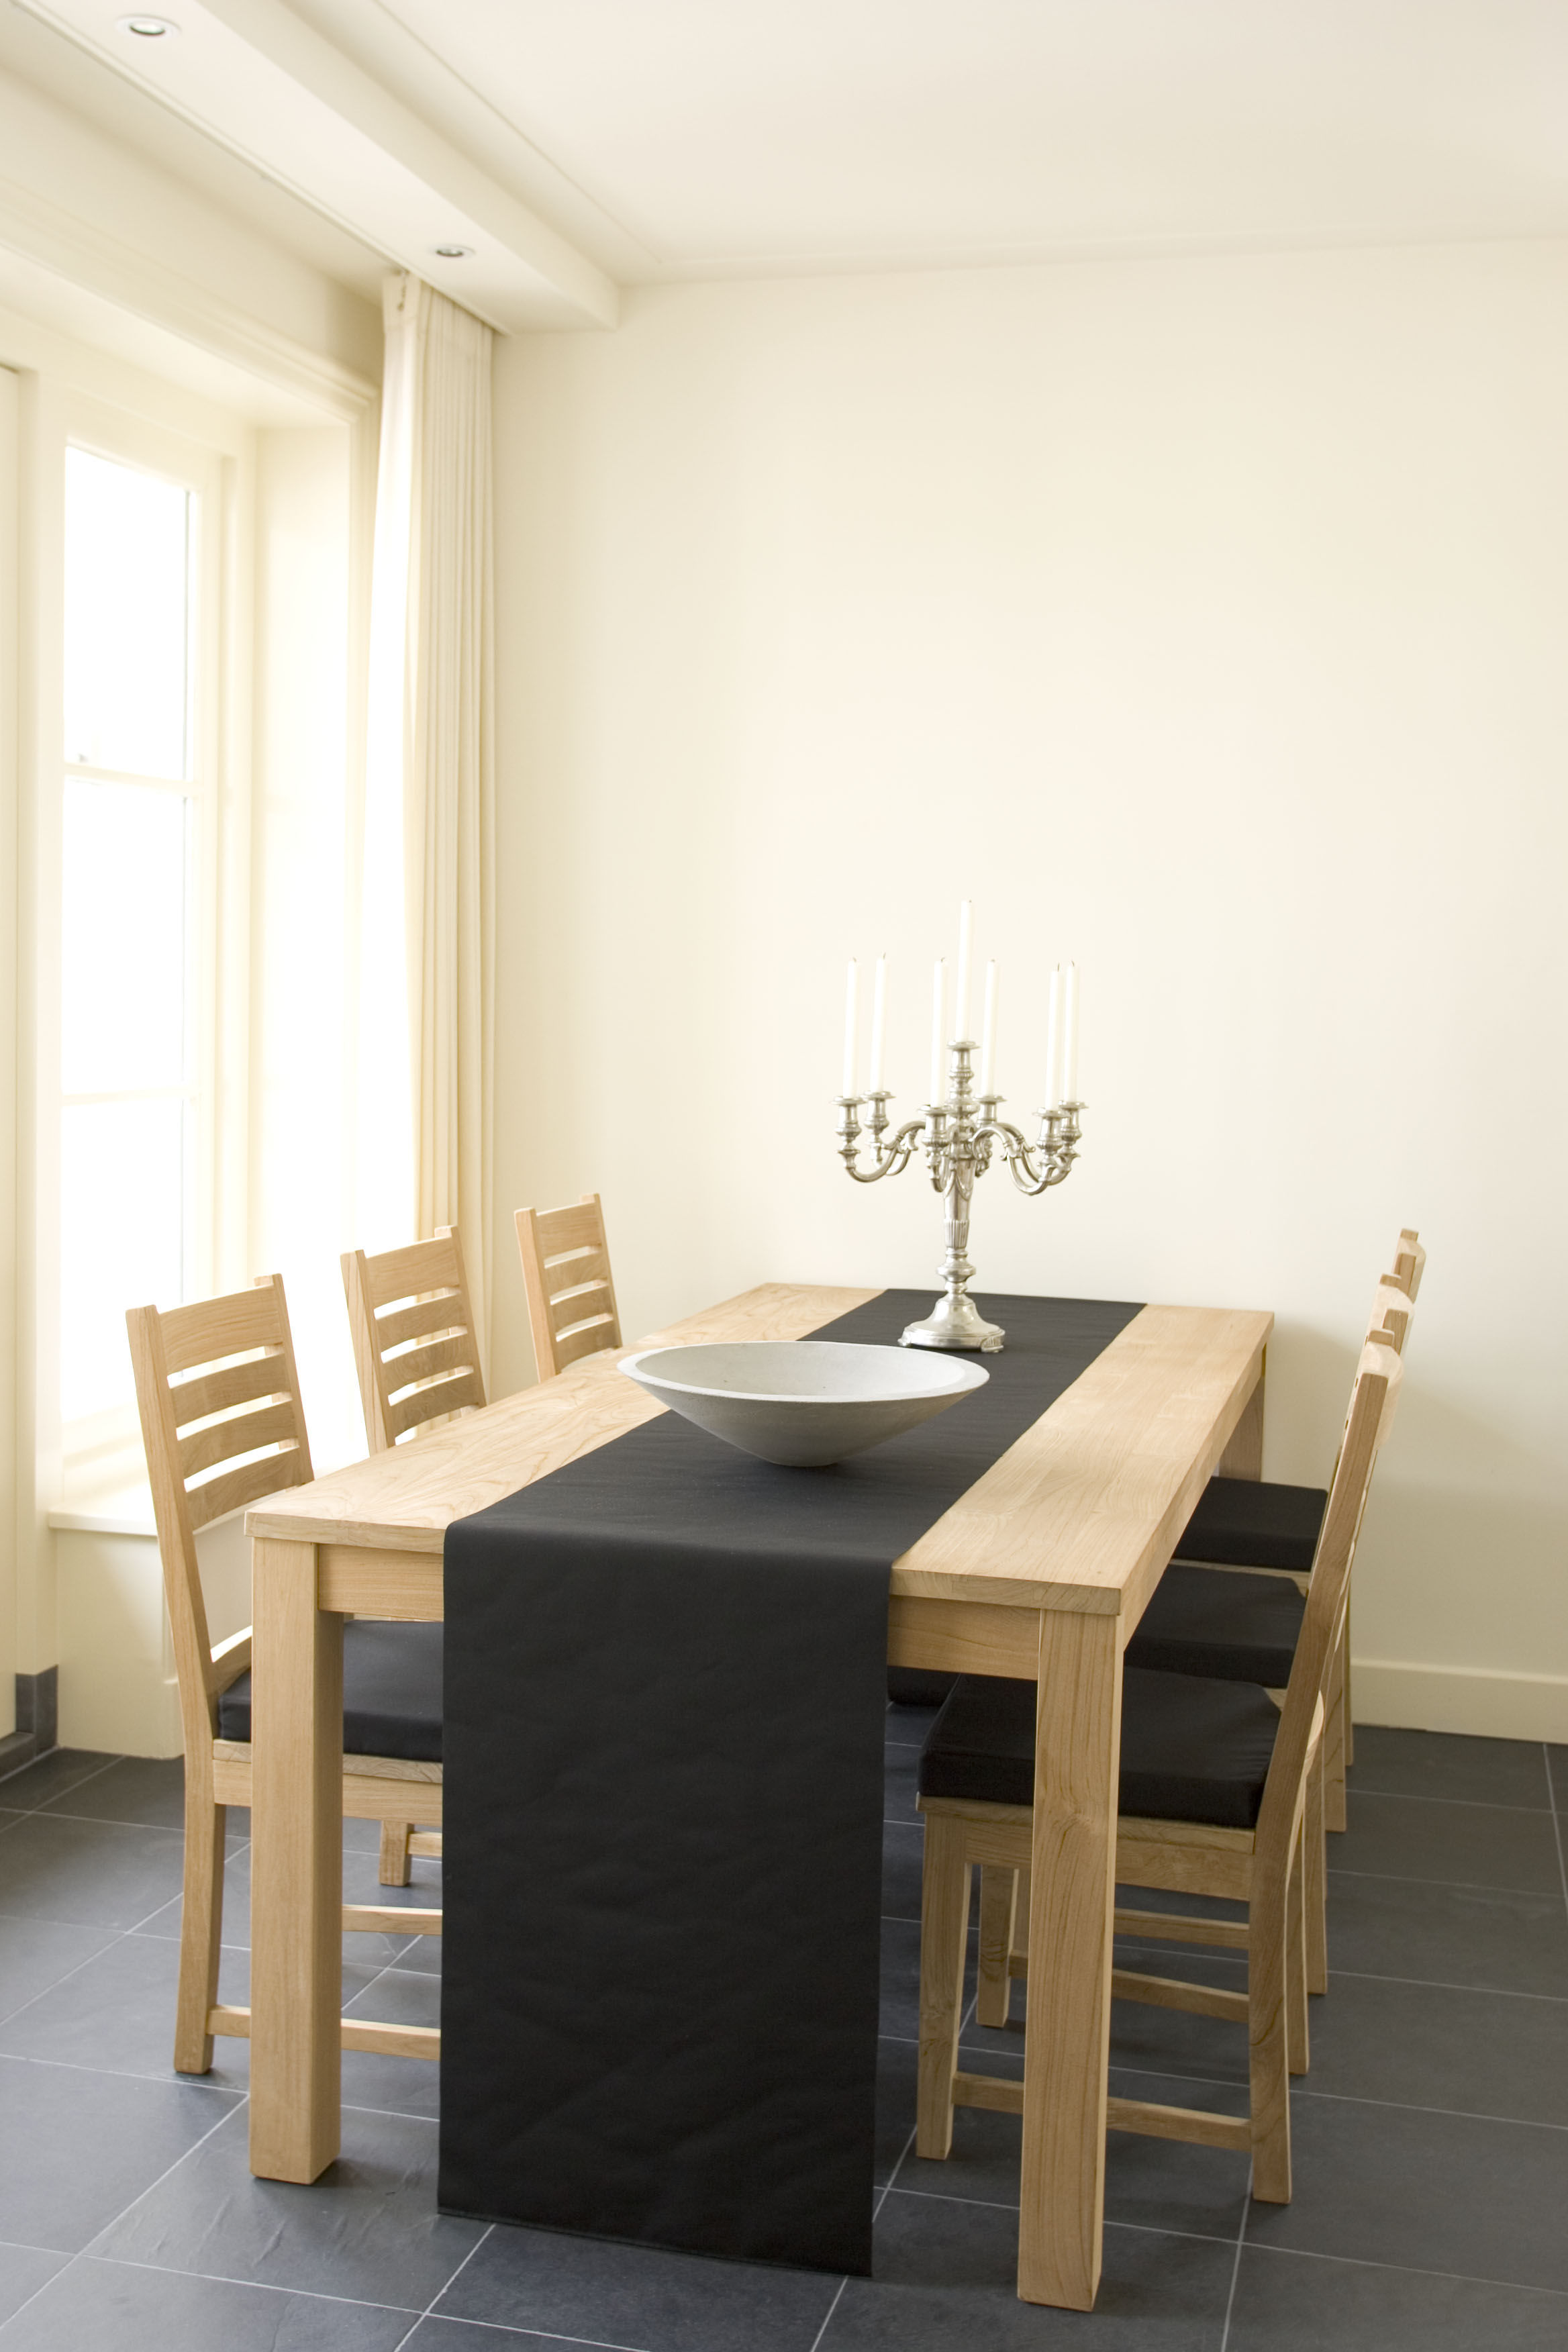 Annapart Diner Table - Outlet 2